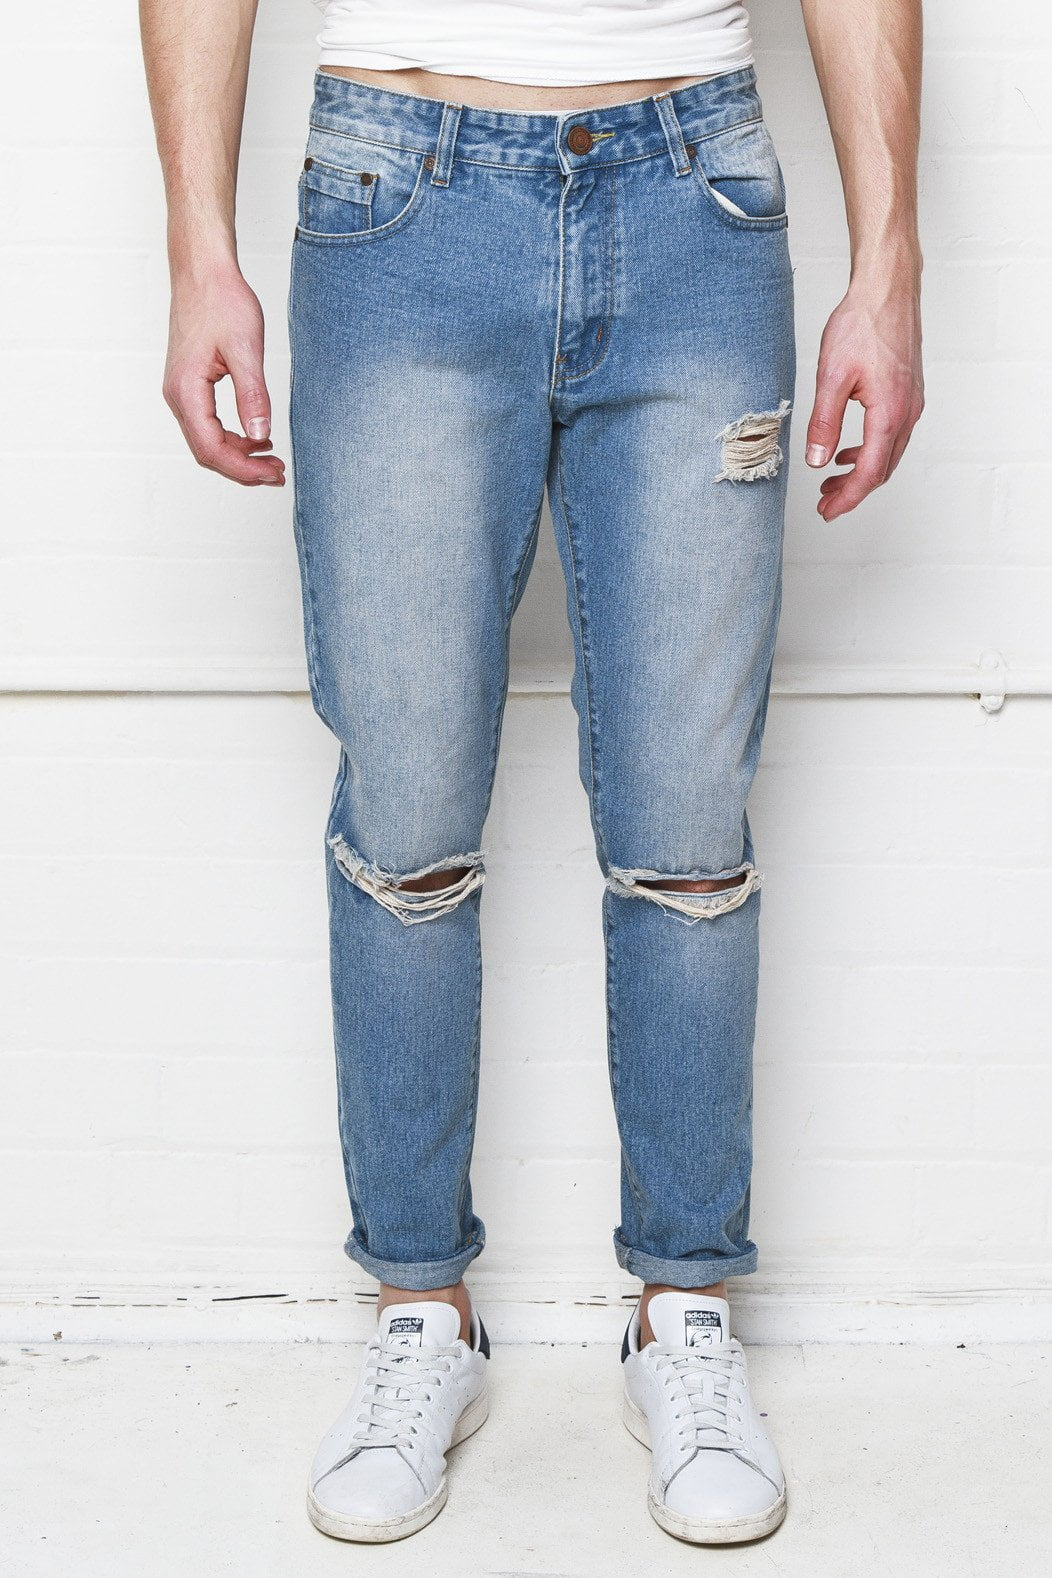 Liquor n Poker - Charleston Stonewashed straight leg jean with distressing and ripped knee - Liquor N Poker  Liquor N Poker